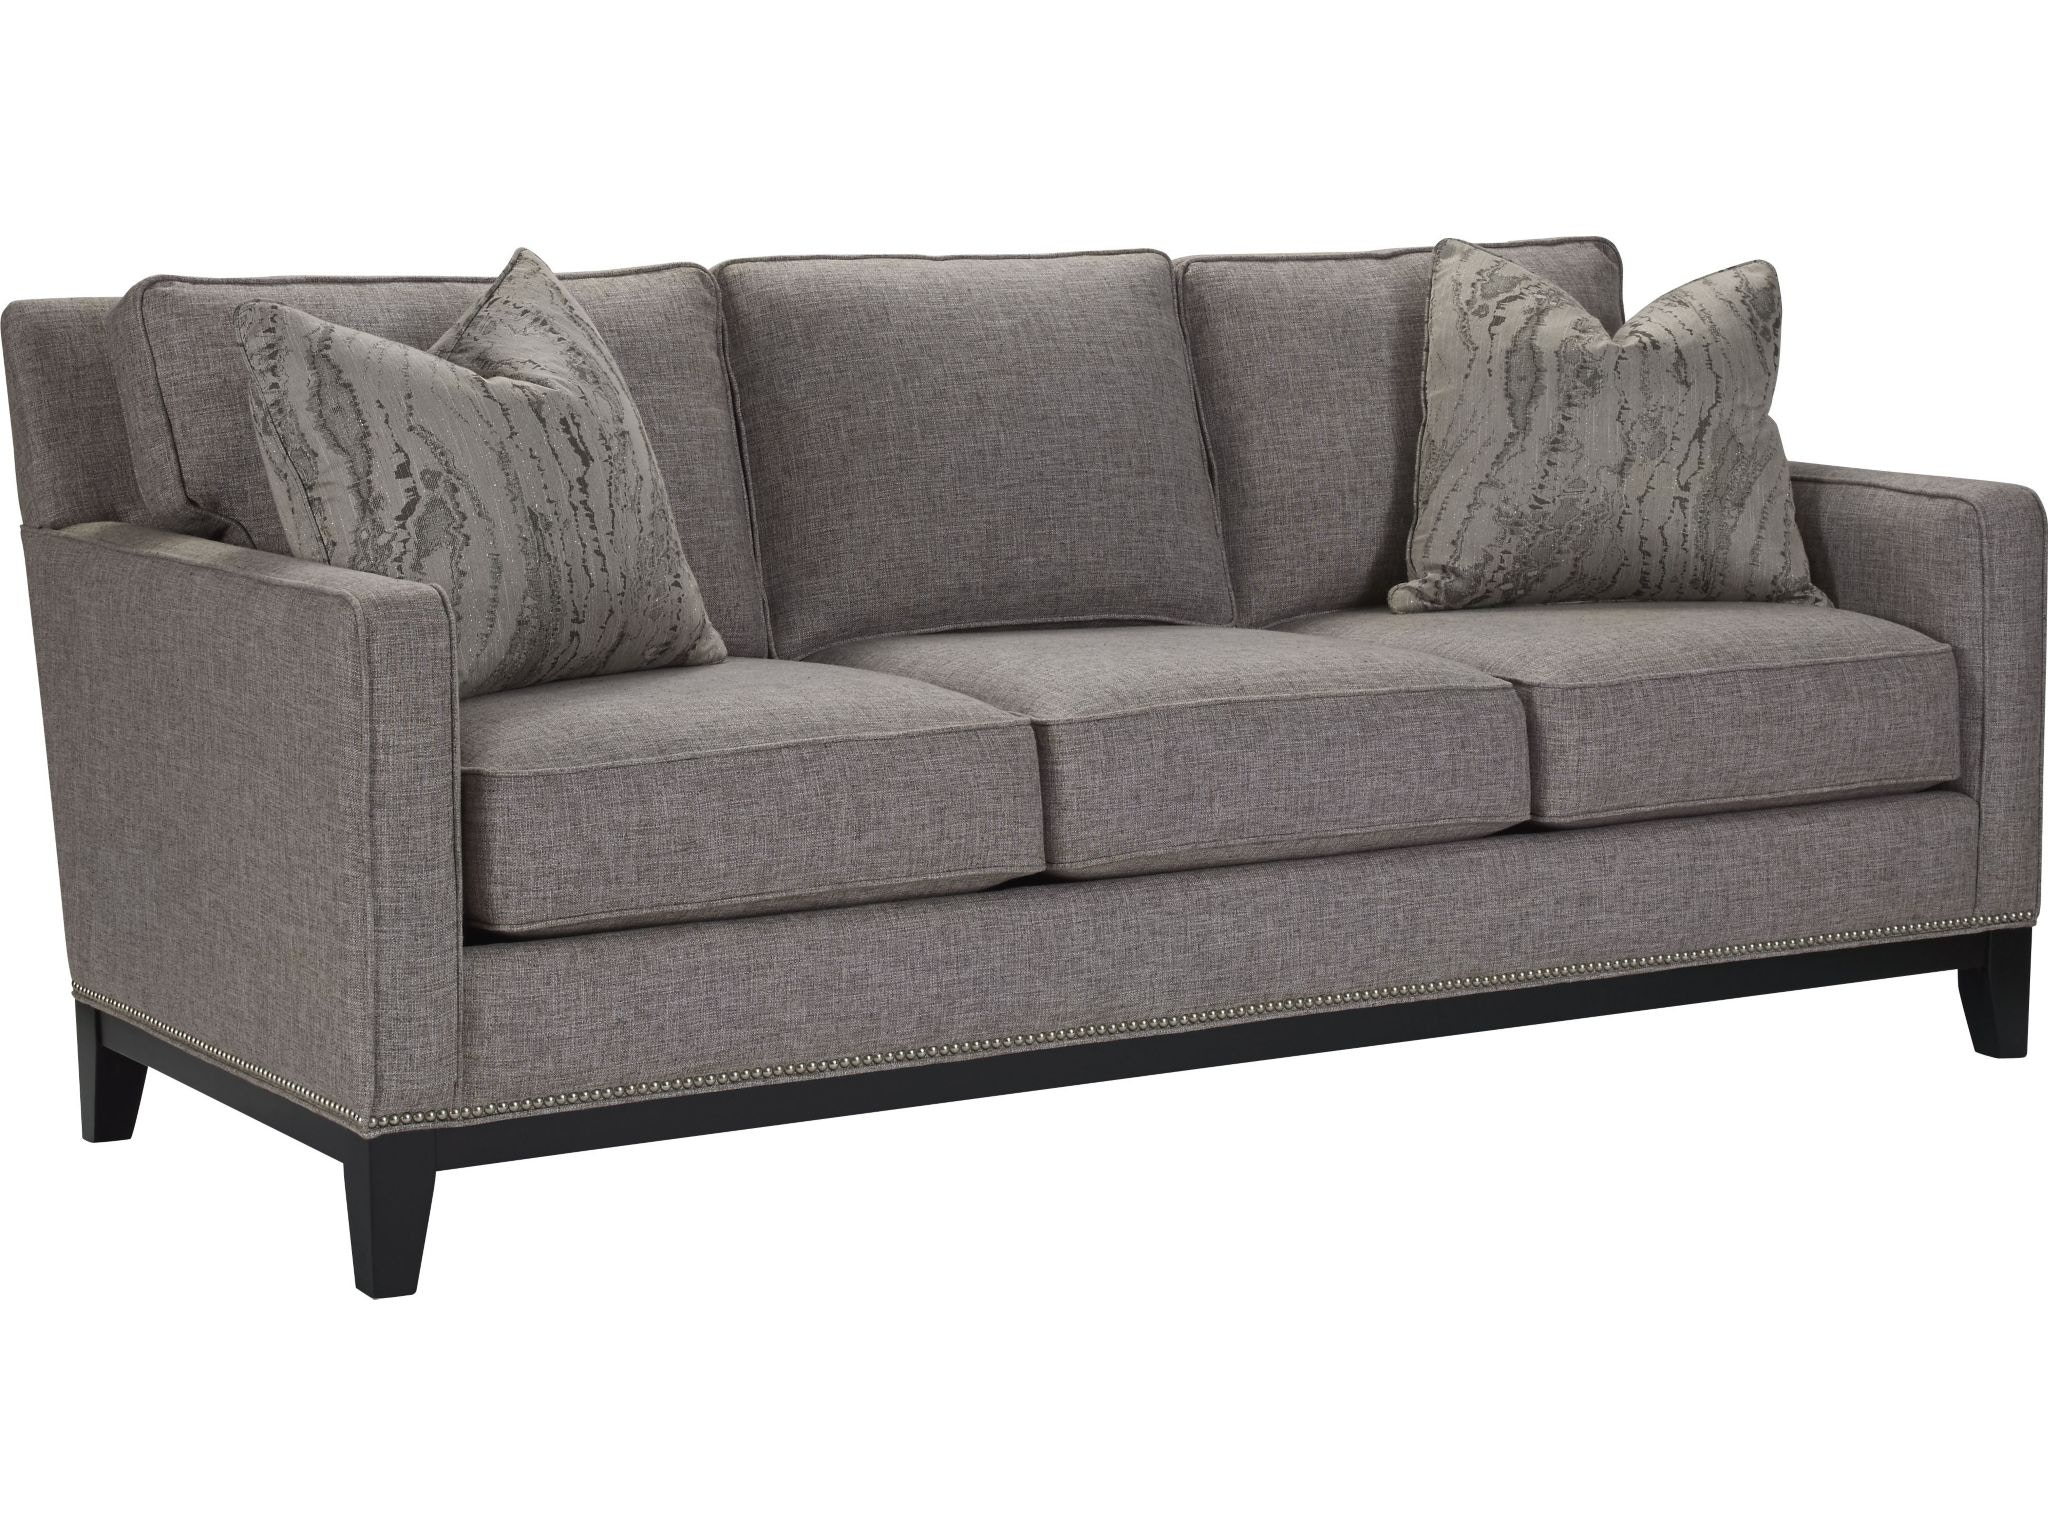 Attirant Thomasville Markham Sleeper Sofa (Custom) T100 12SLC